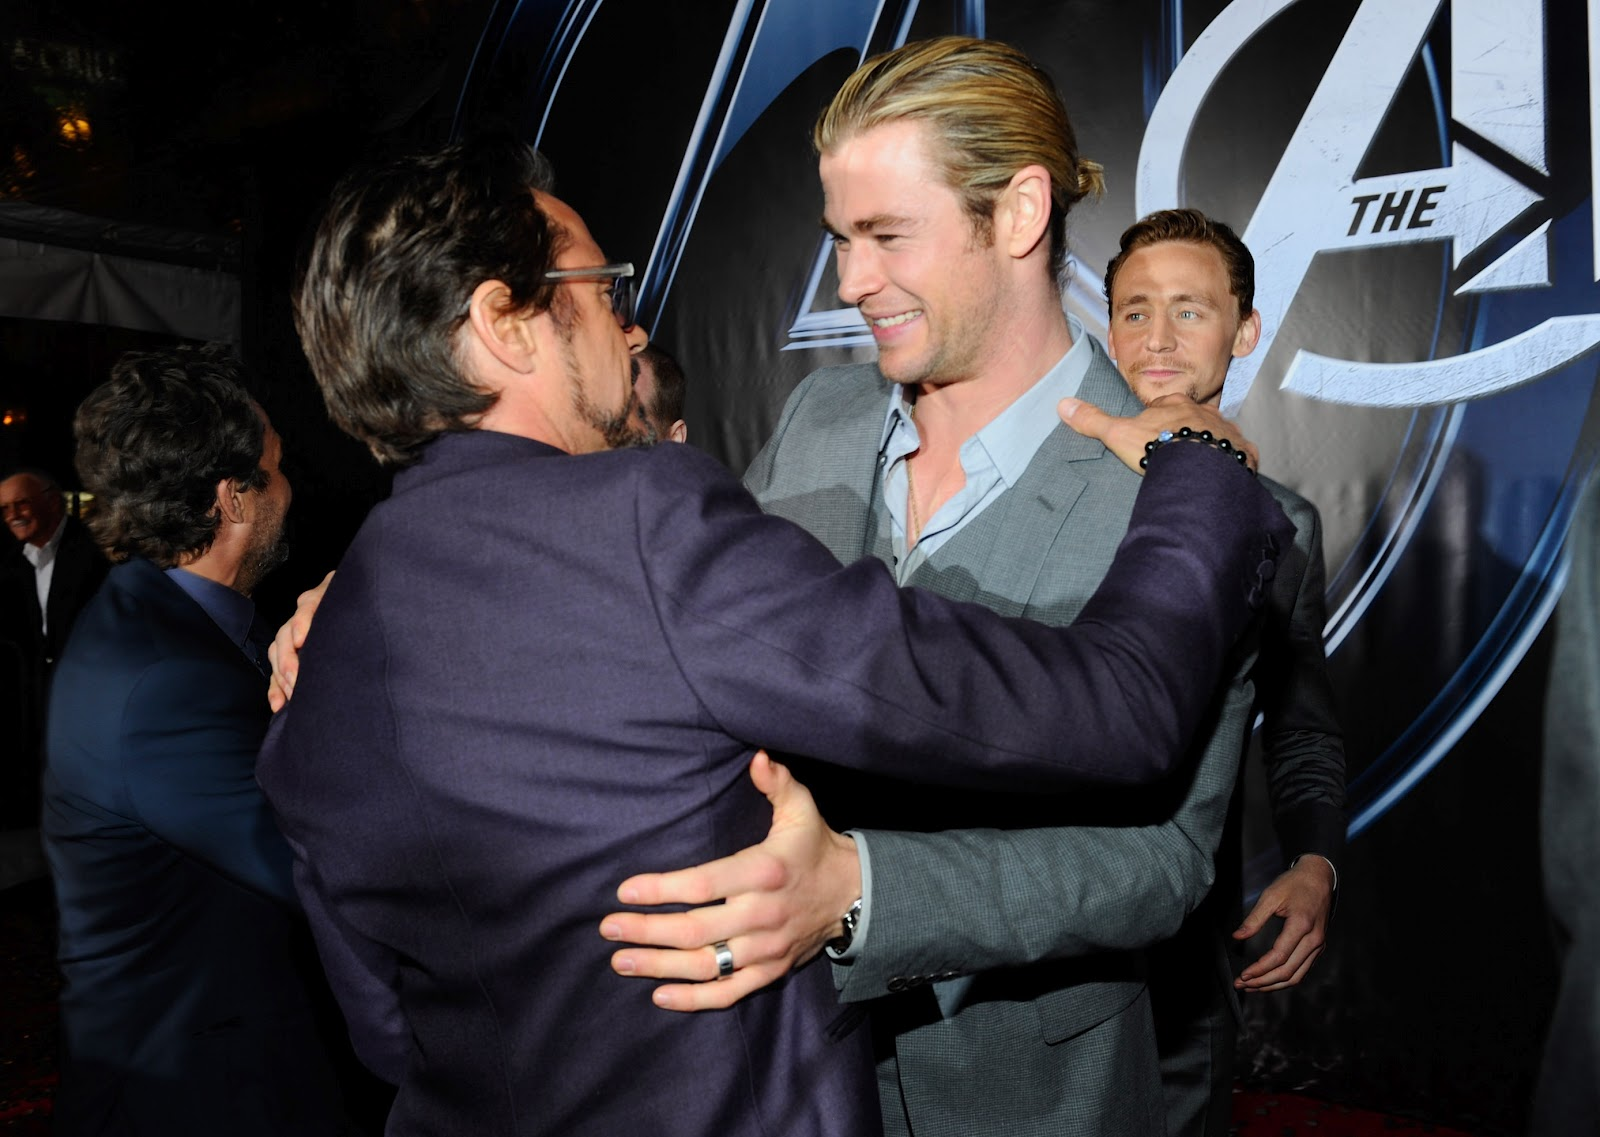 http://4.bp.blogspot.com/-vIgj5eFBkc4/T4iJKRO8a4I/AAAAAAAABJQ/i9pSPRcqEvQ/s1600/Avengers+US+Premiere.+Robert+Downey+Jr+and+Chris+Hemsworth..JPG